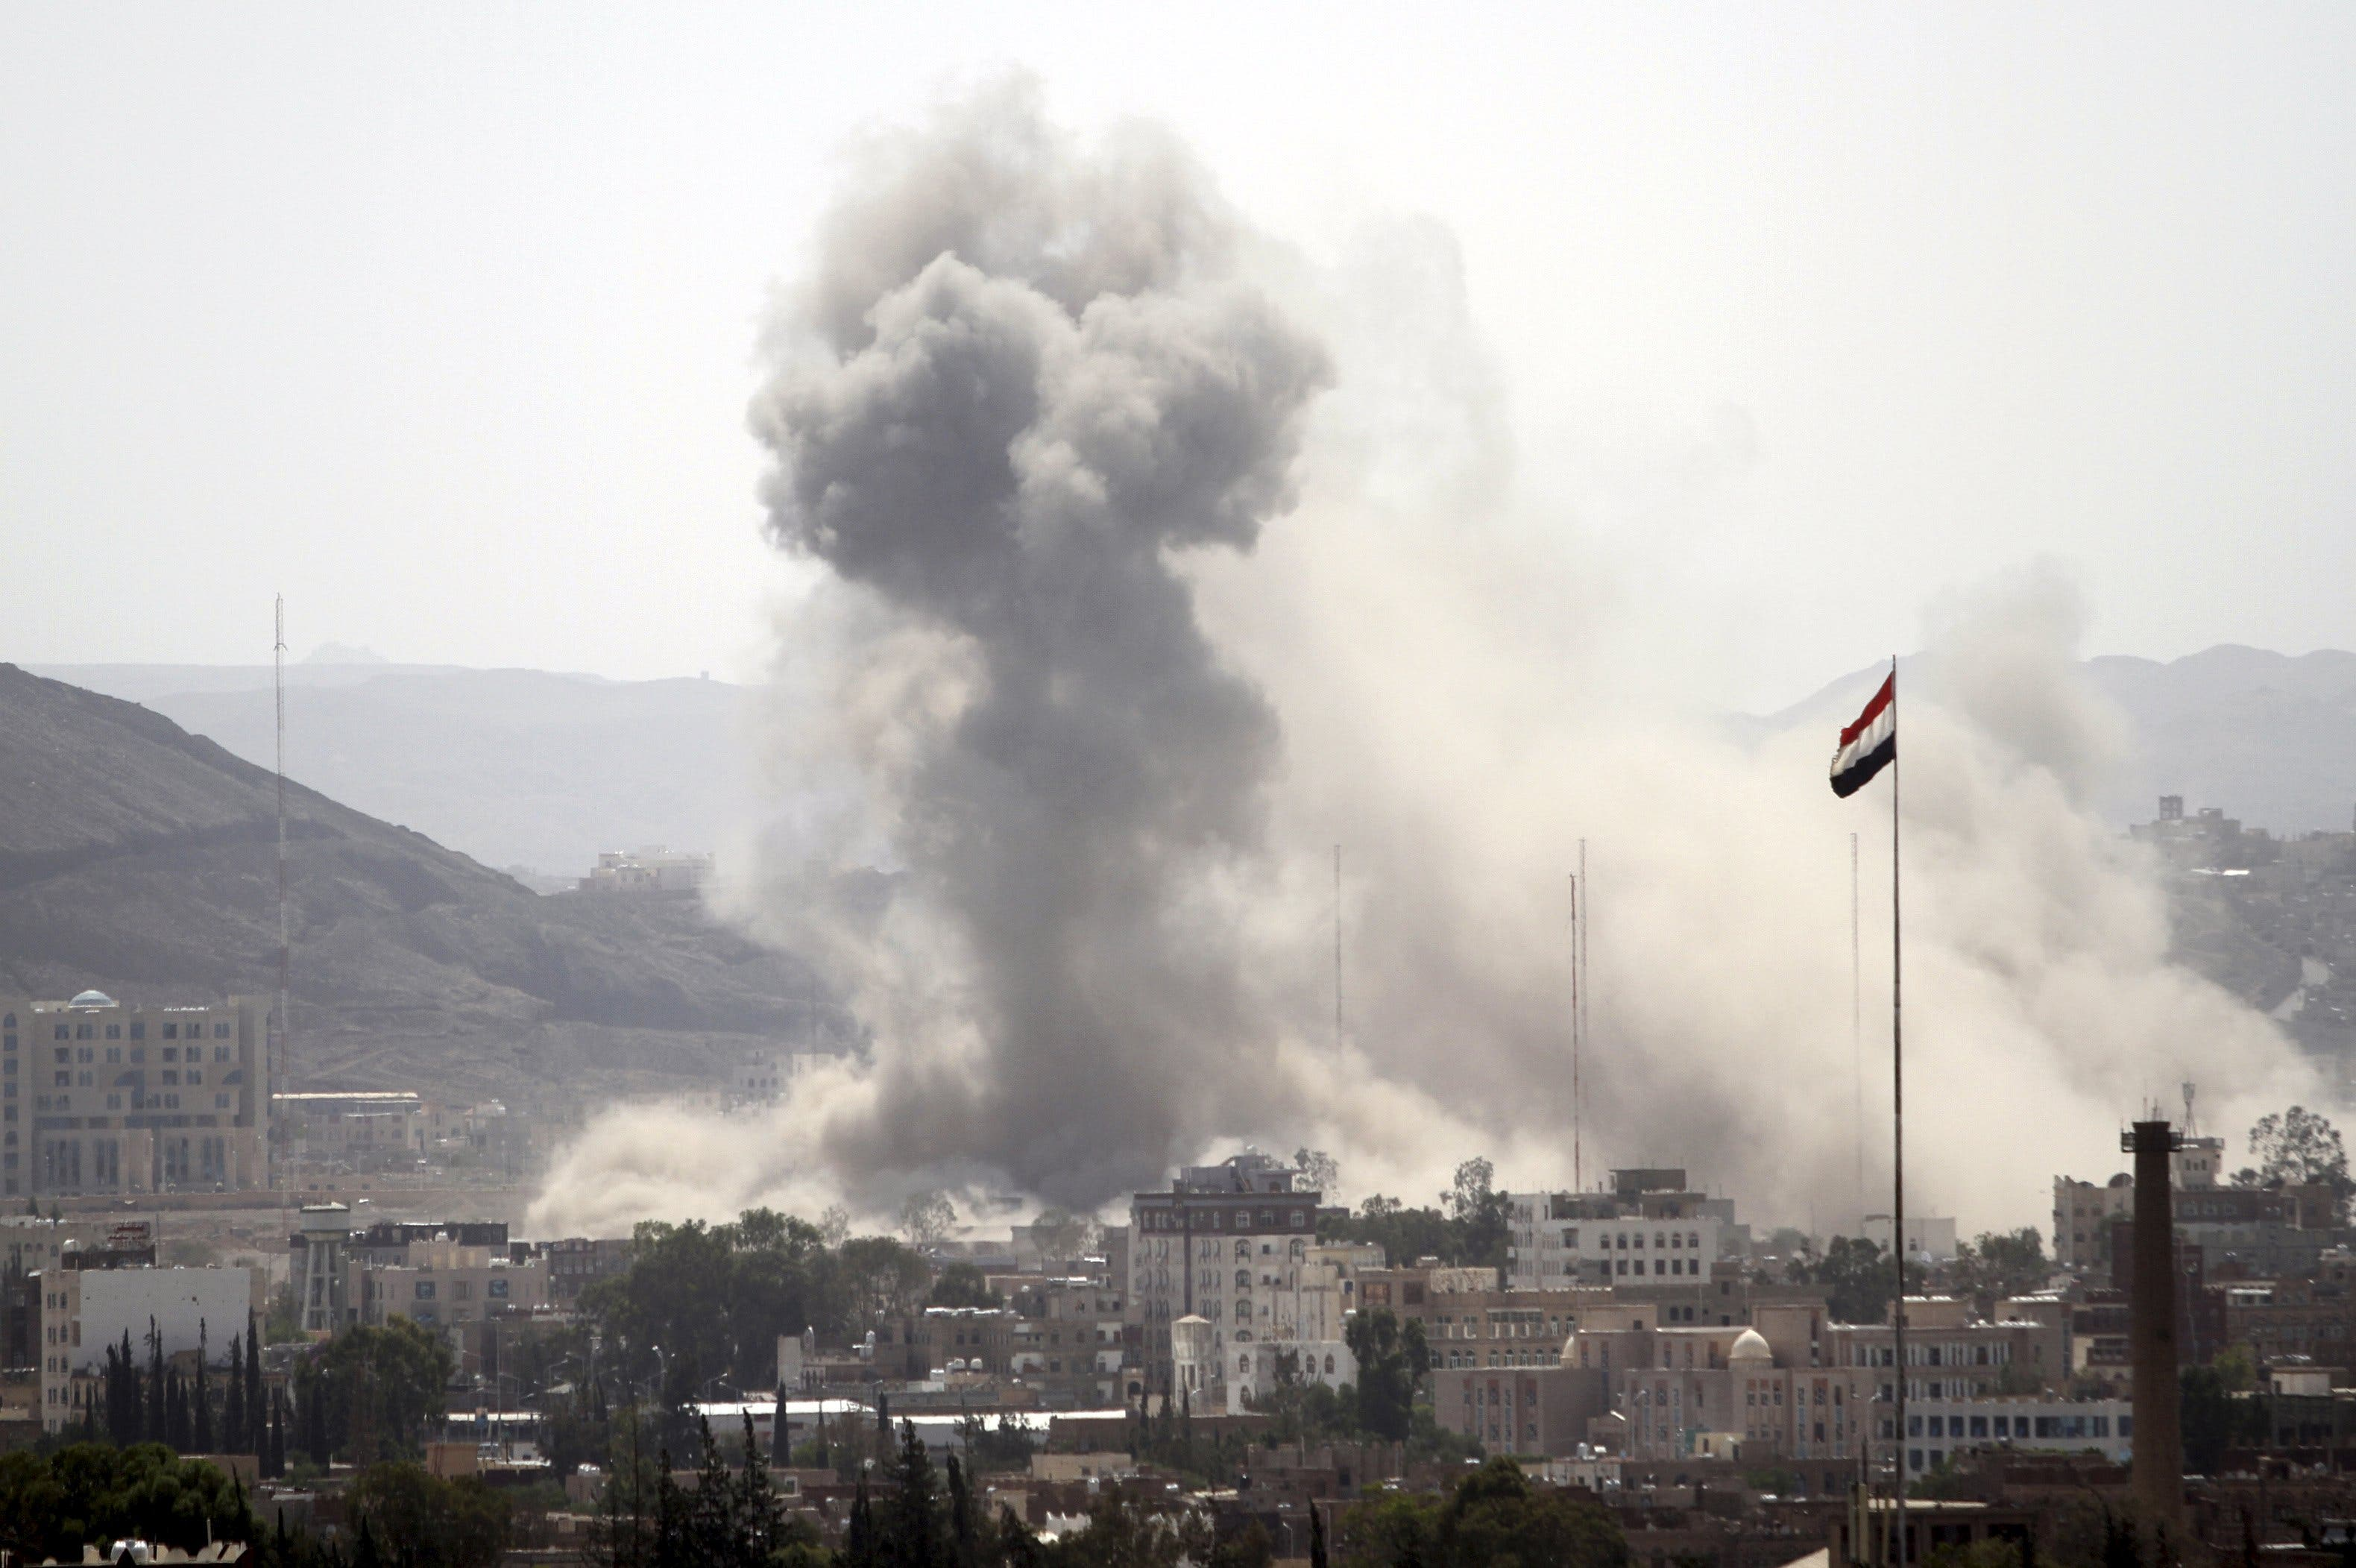 Smoke billows from a Houthi-controlled military site after it was hit by a Saudi-led air strike in Sanaa, Yemen, June 3, 2015. (File: Reuters)